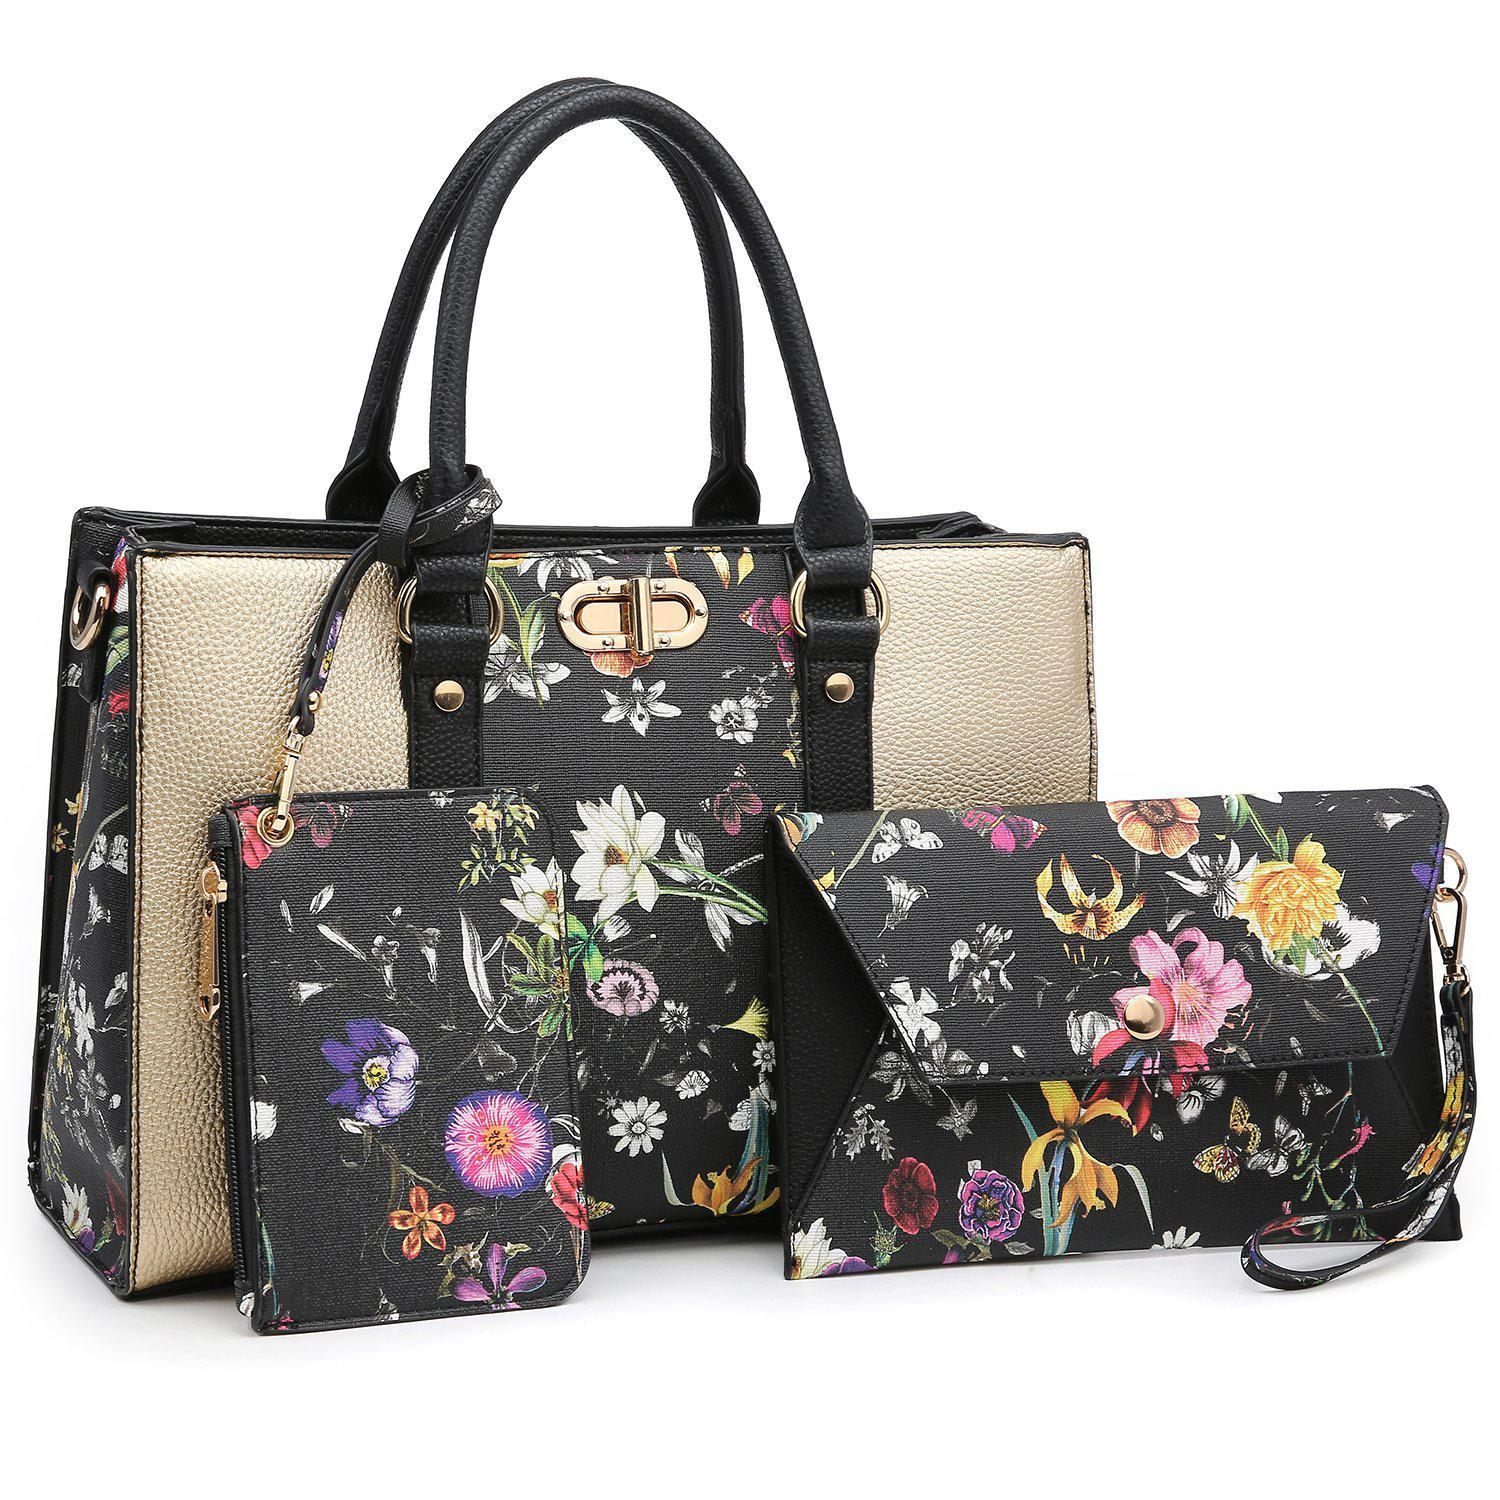 Two-tone 3-in-1 Handbag